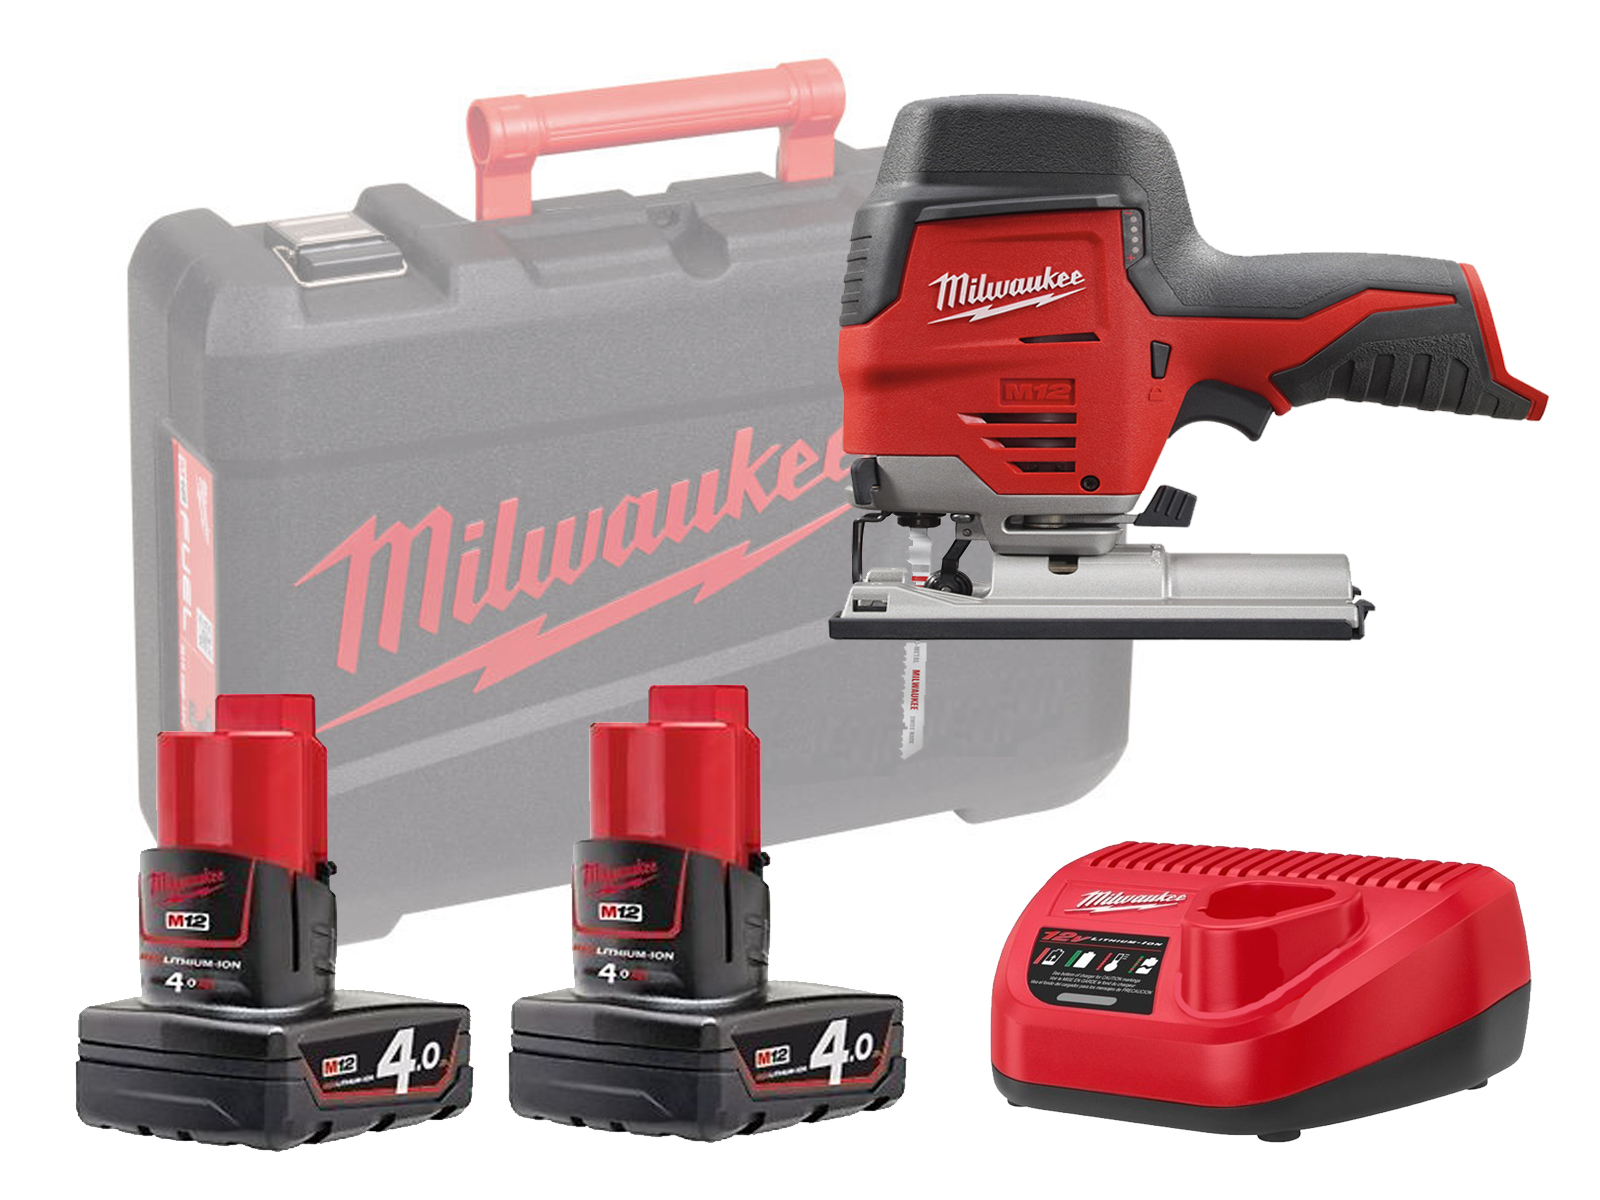 Milwaukee M12JS 12V Sub Compact Brushed Jigsaw with QUICK-LOK T-Shank Blade Clamp - 4.0ah Pack